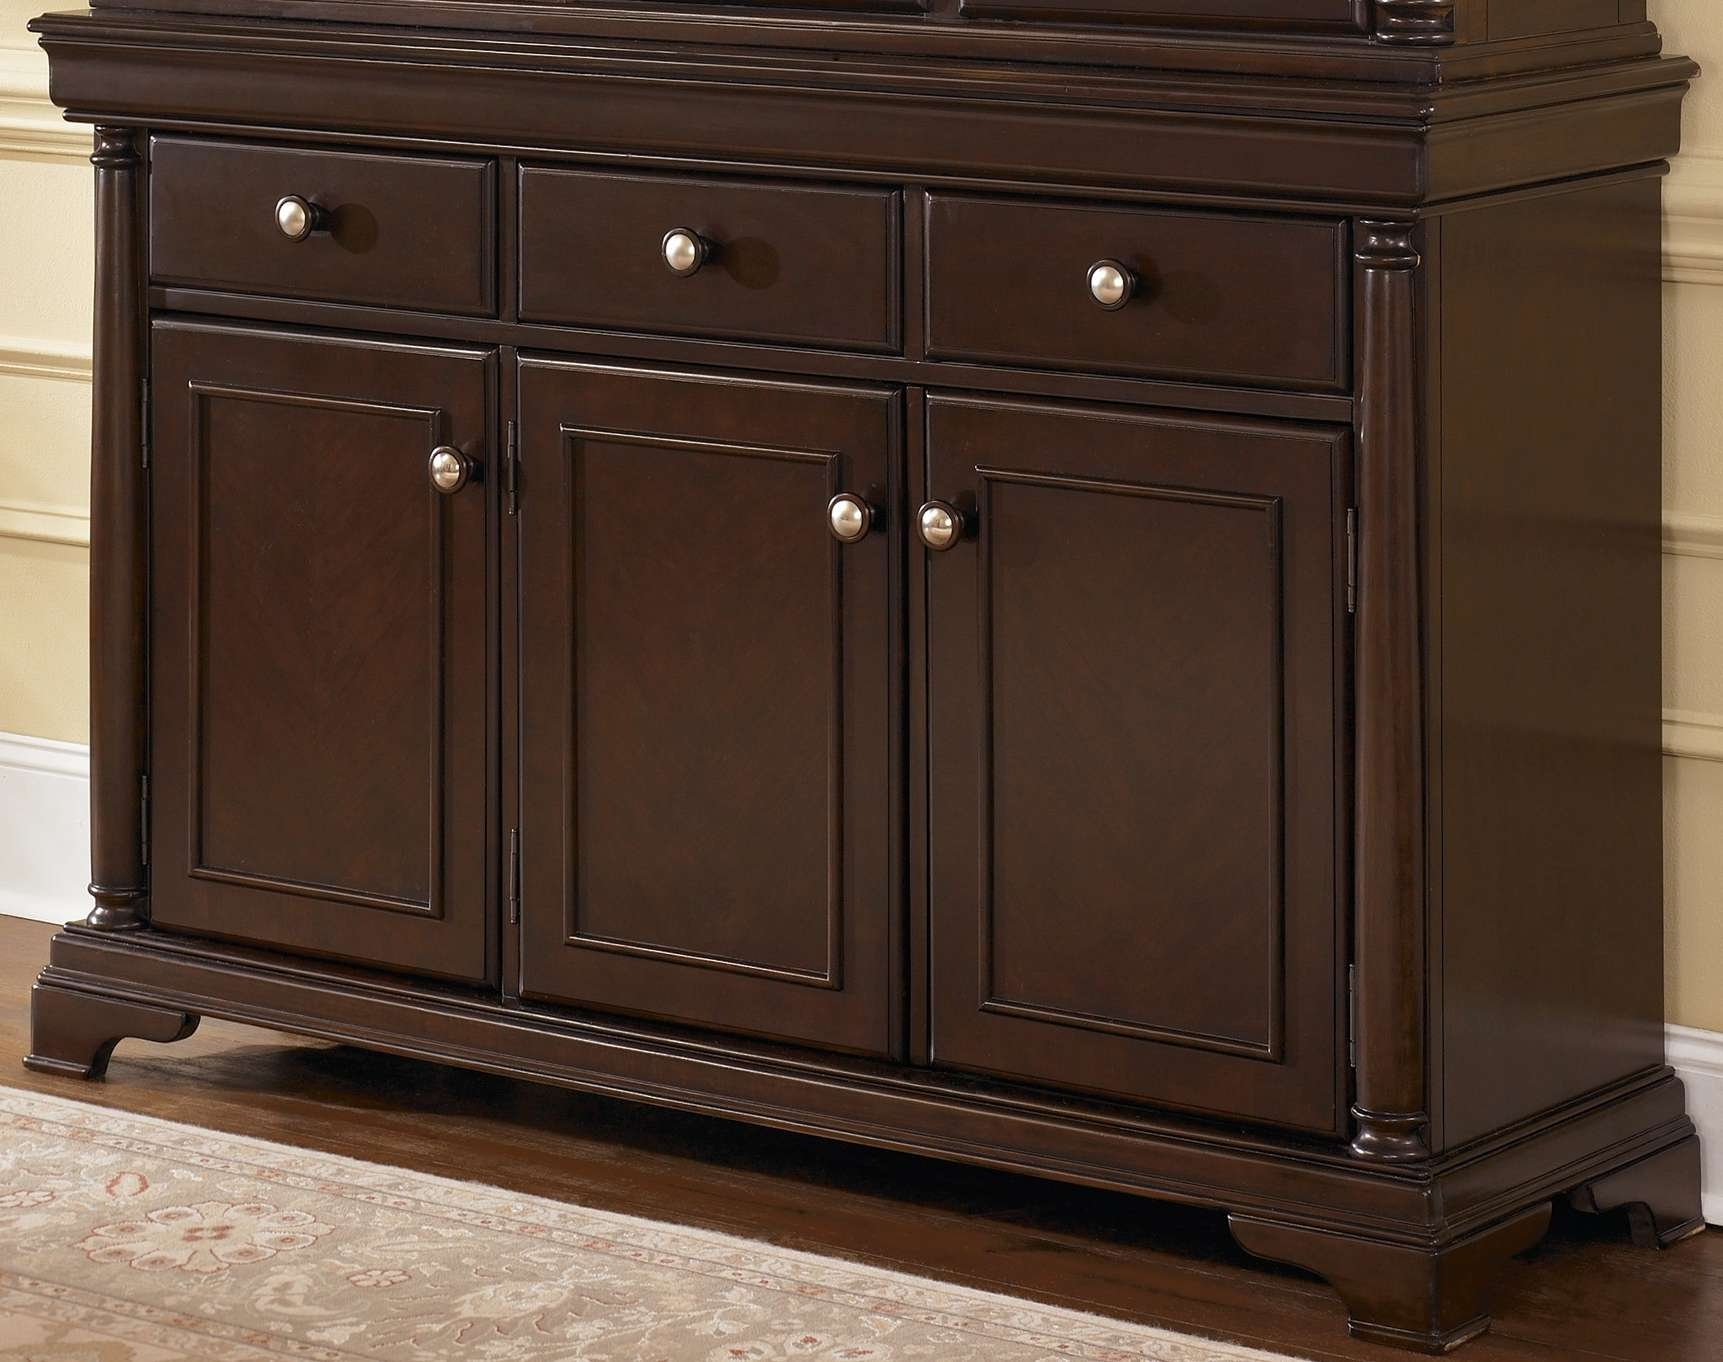 Lovely Dining Room Sideboards – Bjdgjy Regarding Dining Sideboards (View 15 of 20)